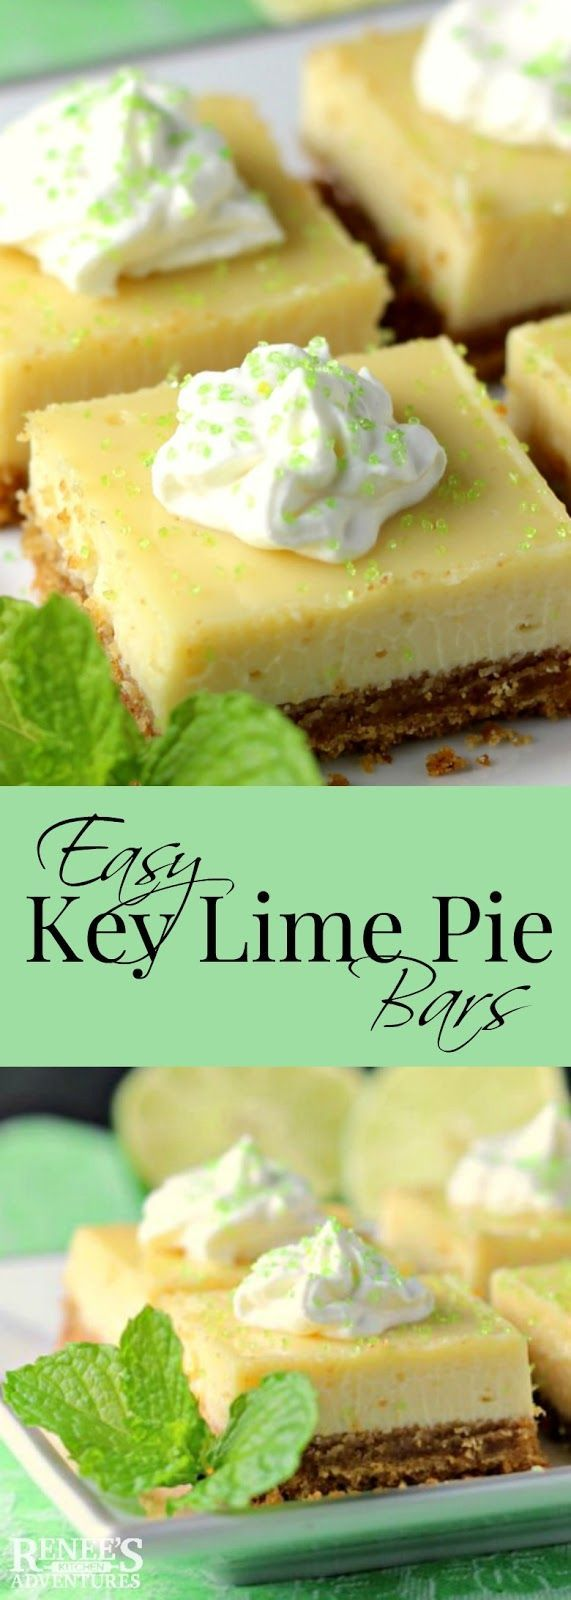 Easy Key Lime Pie Bars   Renee's Kitchen Adventures - easy dessert recipe for key lime pie bars made with key lime juice, condensed milk and eggs. #dessert #lime